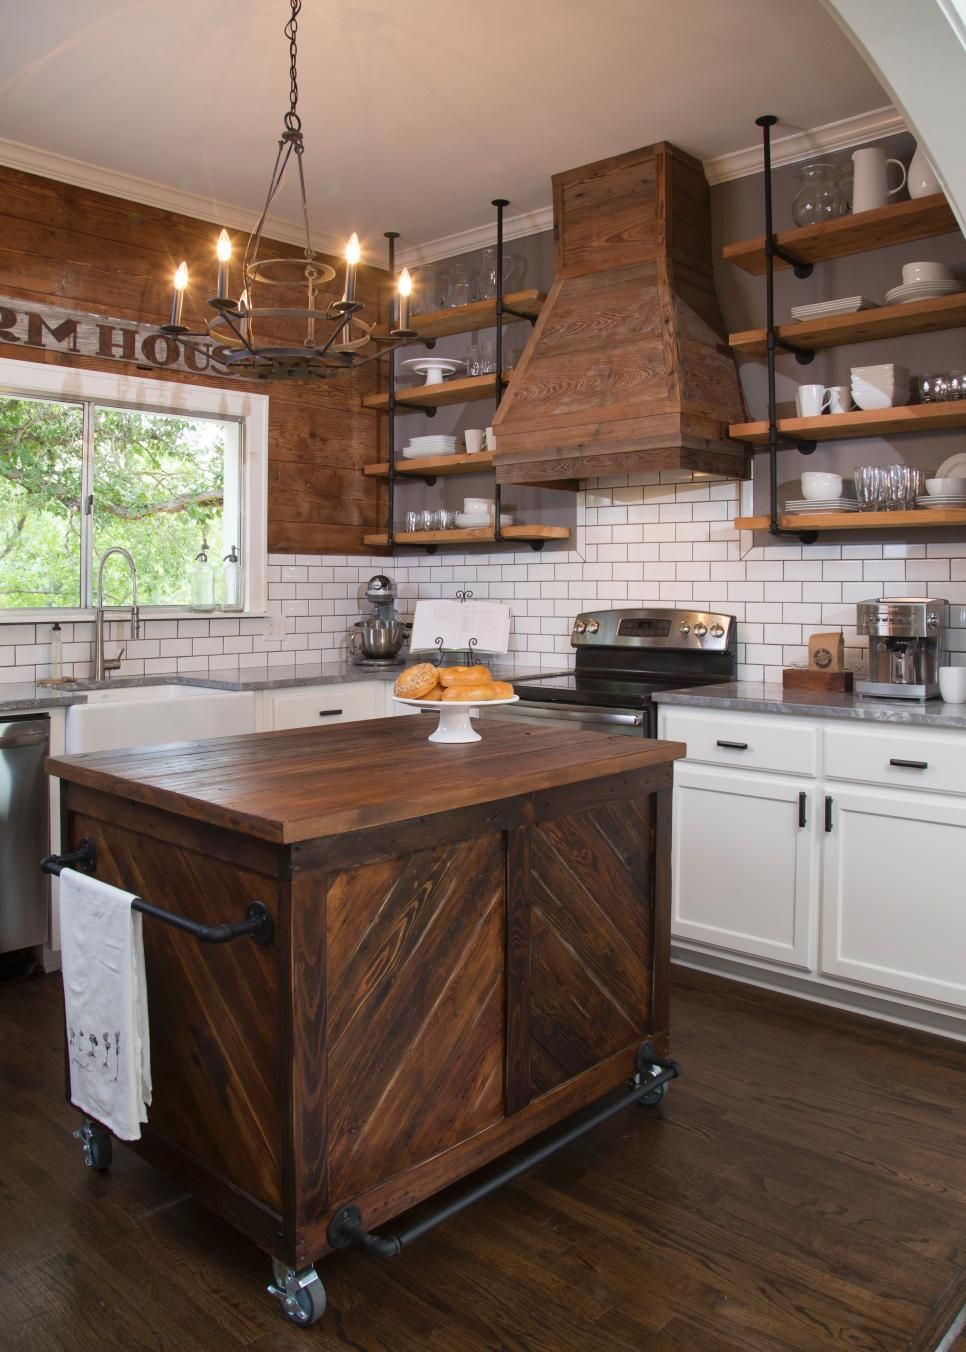 Fixer upper craftsman kitchen - Fixer Upper A Craftsman Remodel For Coffeehouse Owners Hgtv S Fixer Upper With Chip And